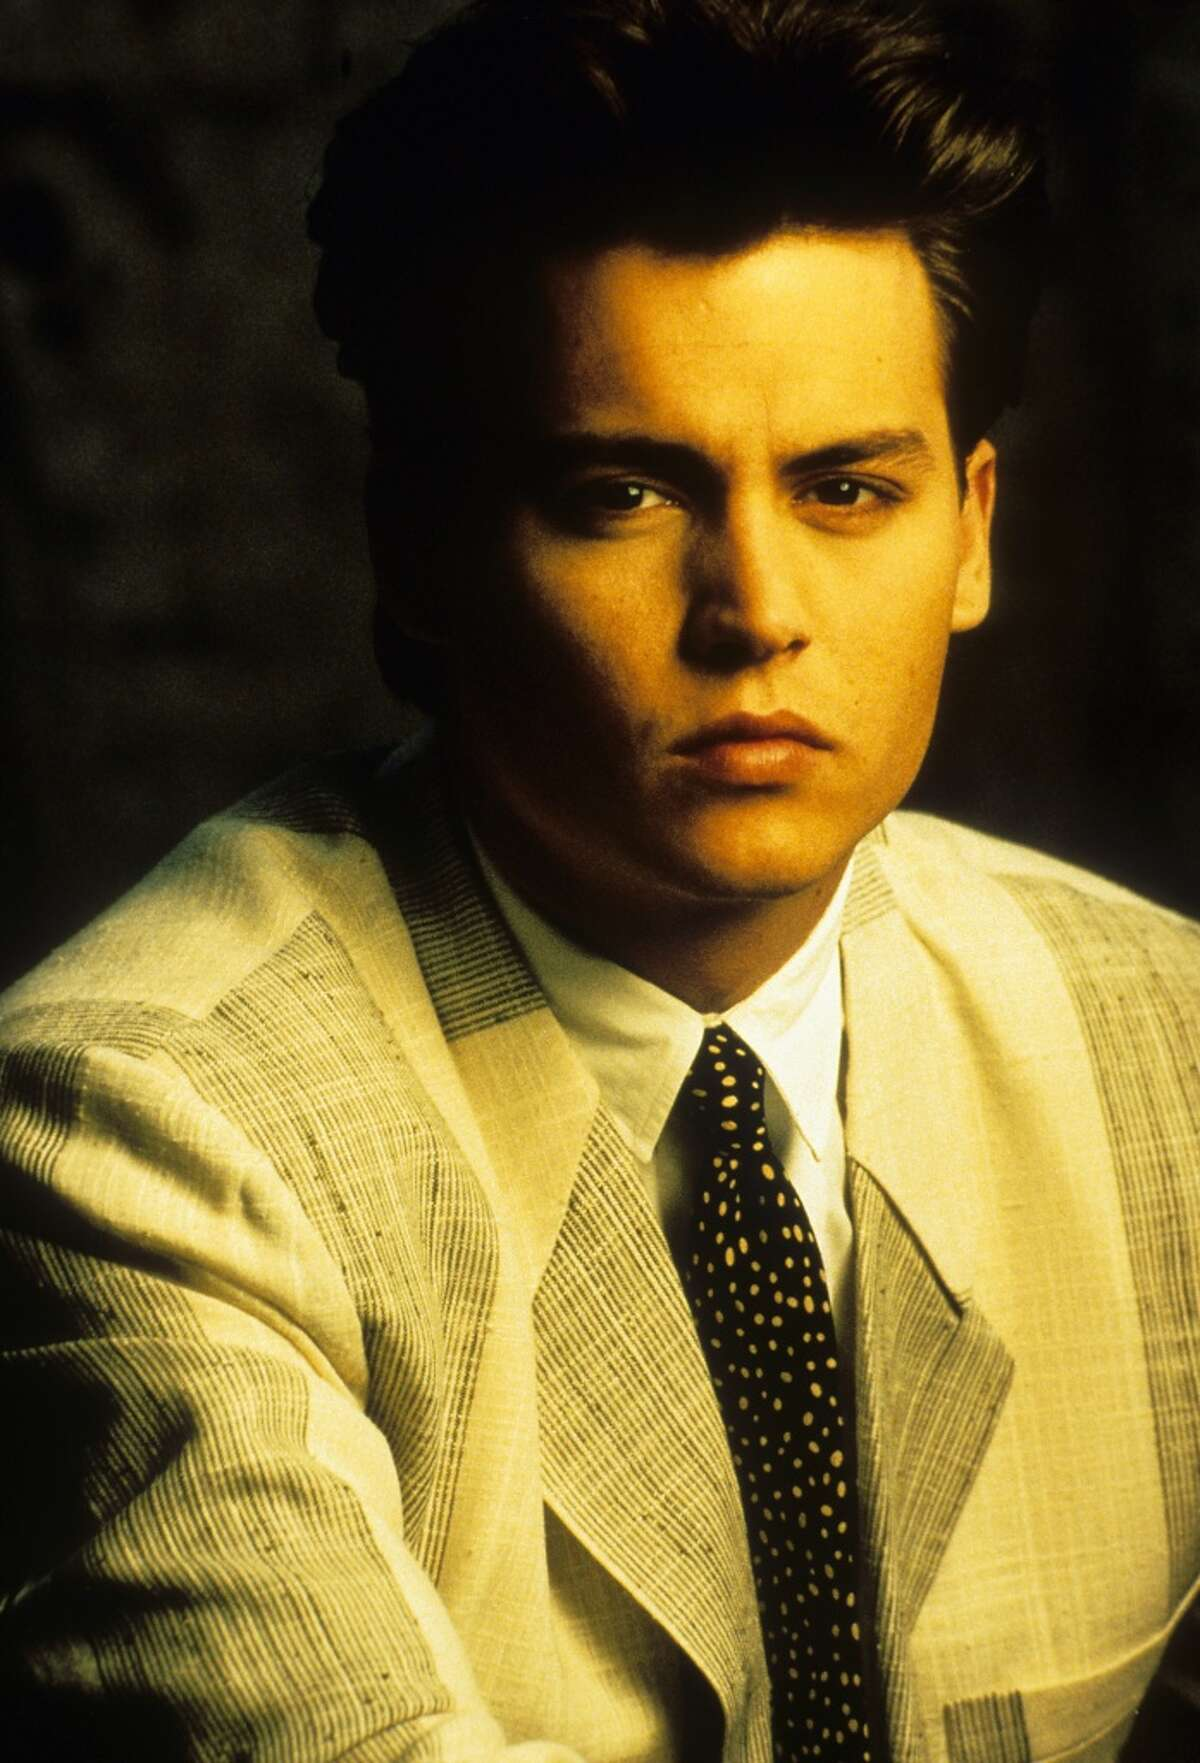 Johnny Depp in a 1987 publicity portrait from